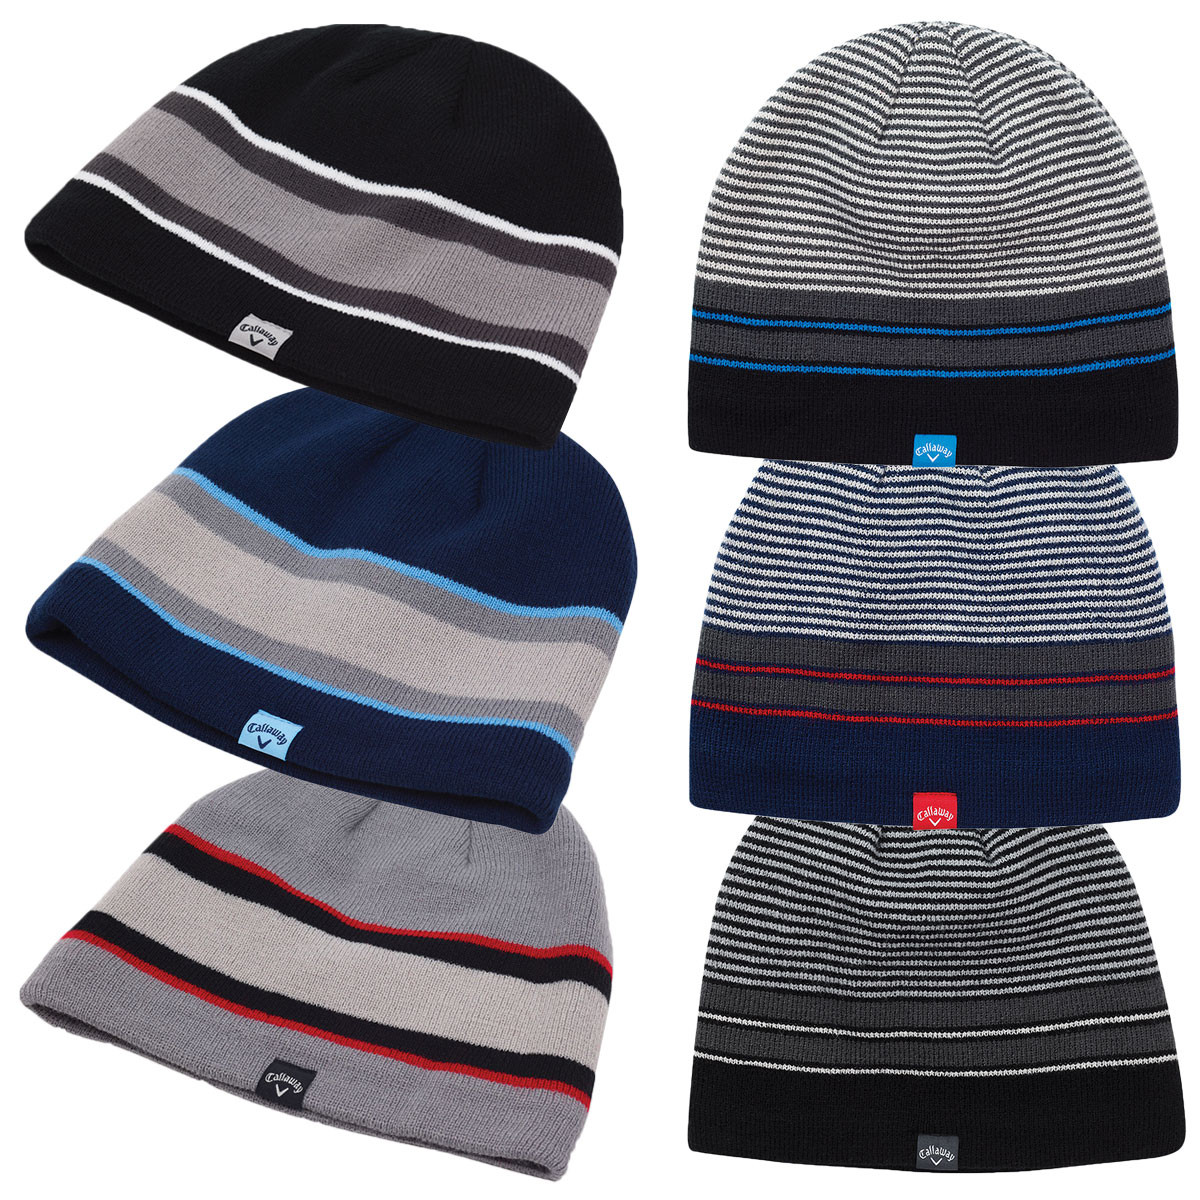 eed22ea3ec0 SHARE THIS ITEM WITH YOUR FRIENDS. Watch video Size Guide. Description   Technology  Reviews0. Description. The Callaway Golf Men s Winter Chill  Beanie Hat ...